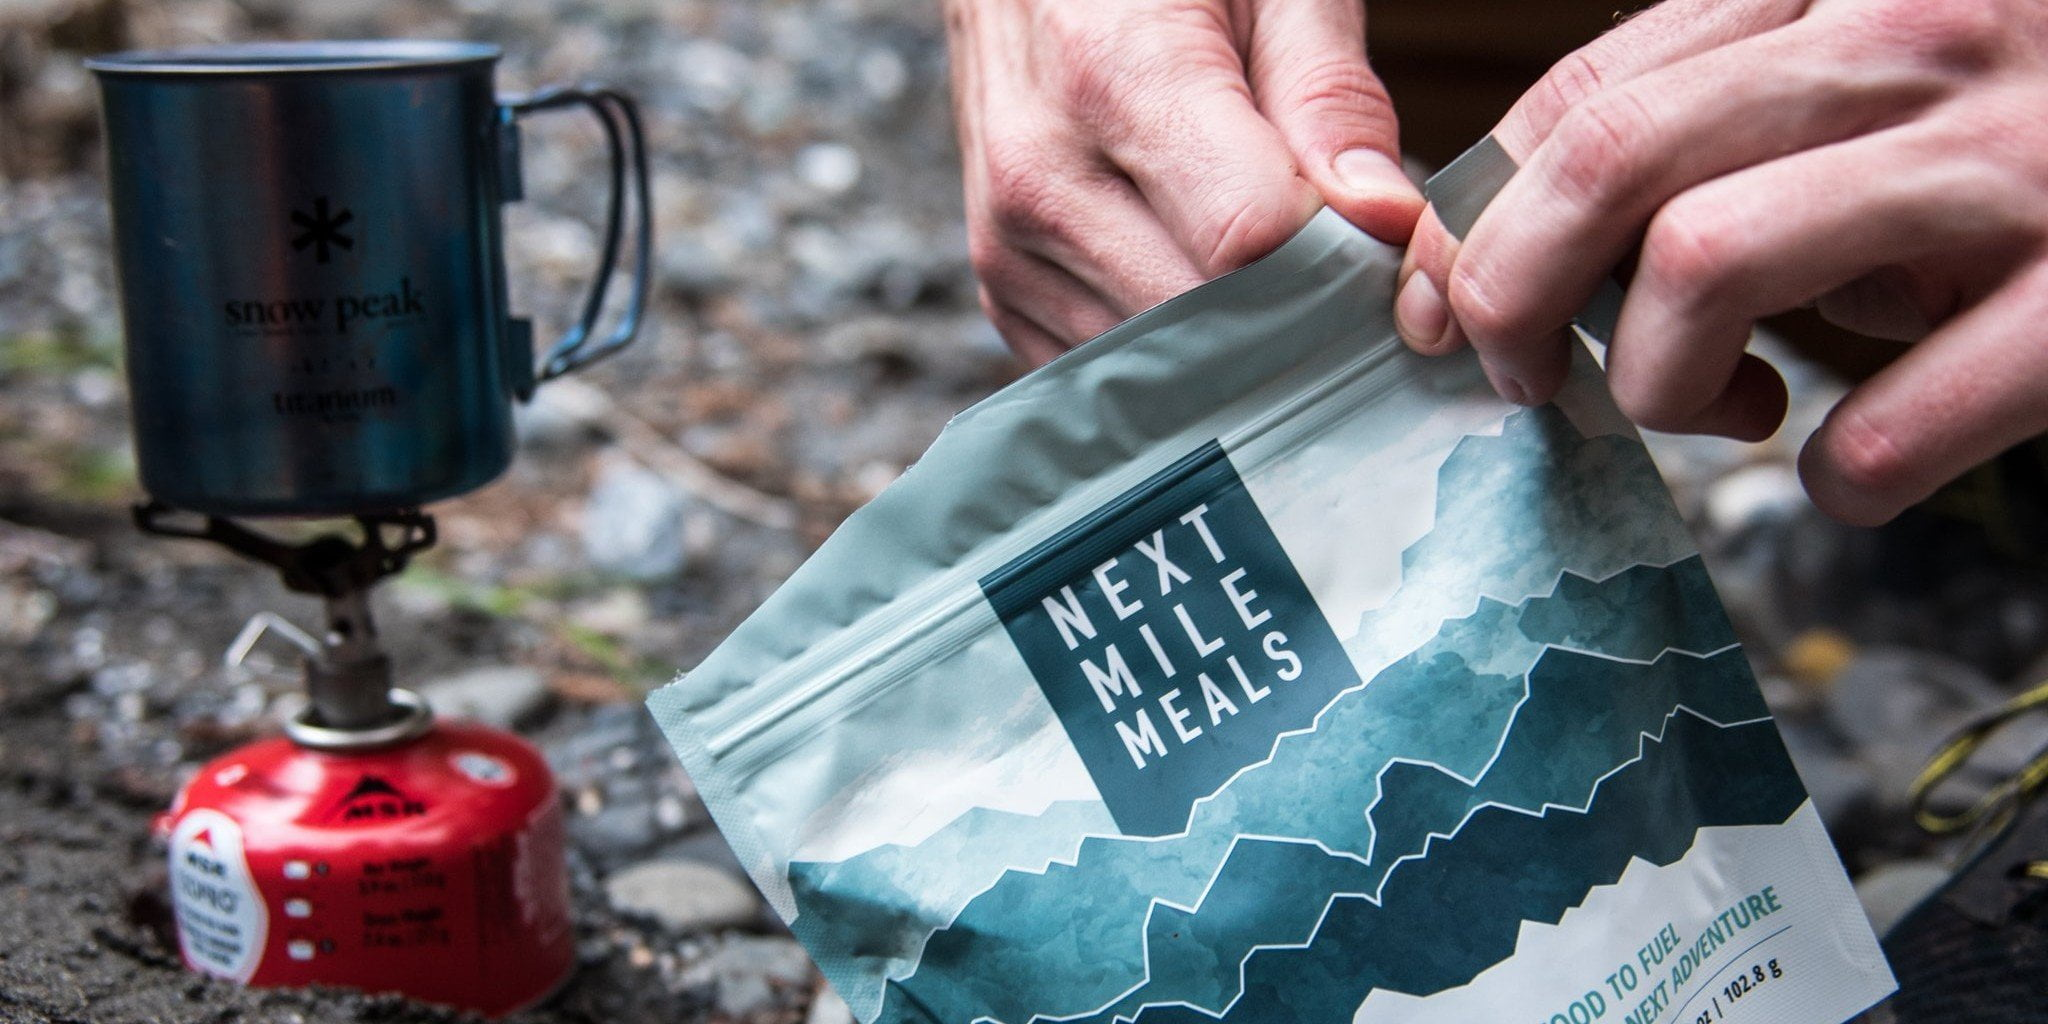 Next Mile Meals Keto Camping and Backpacking meals